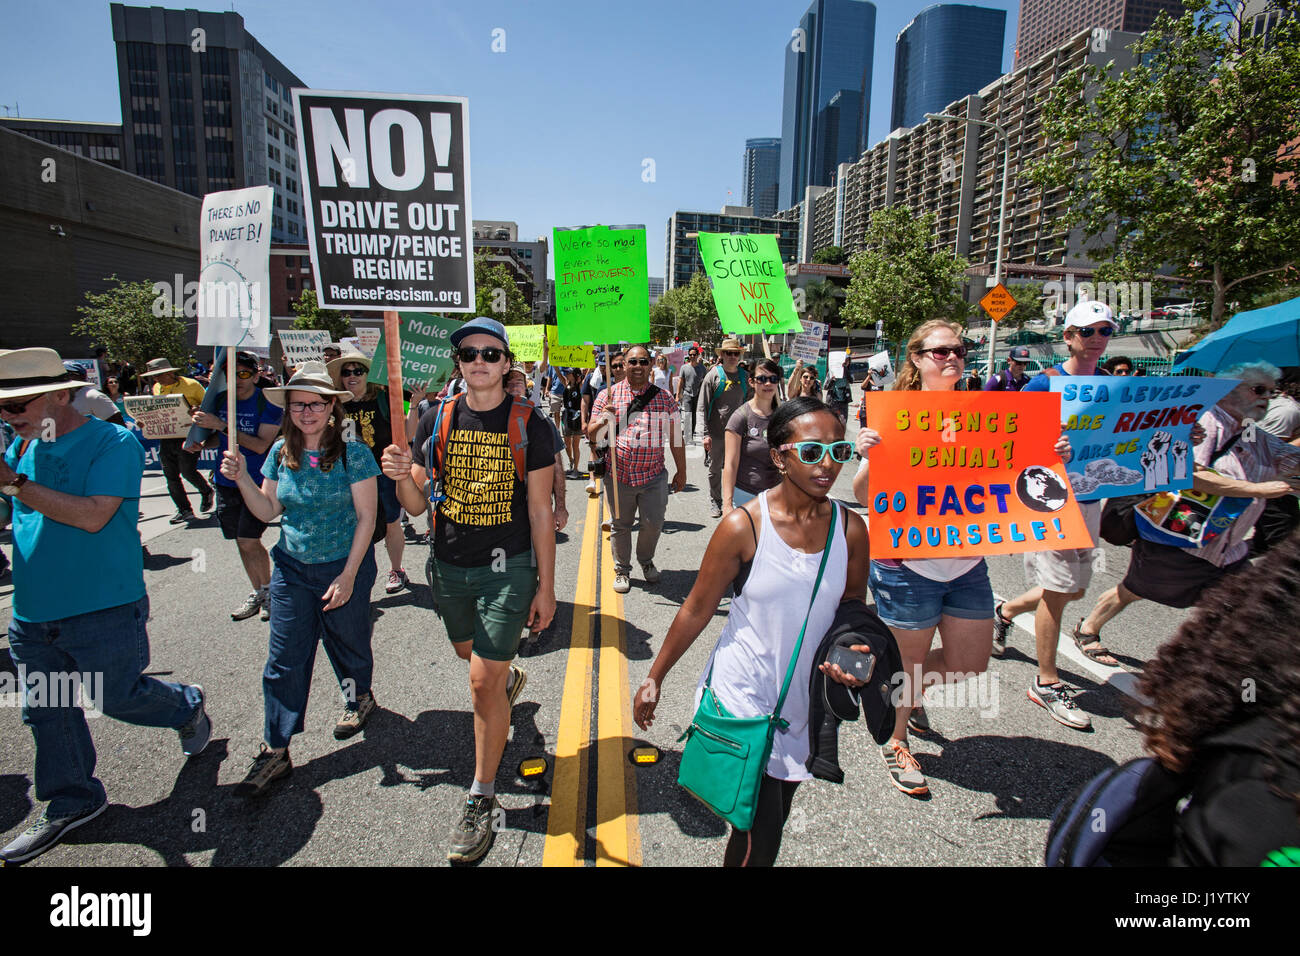 Los Angeles, USA. 22nd April, 2017. March for Science, Downtown Los Angeles, Earth Day, April 22, 2017 Credit: Citizen Stock Photo